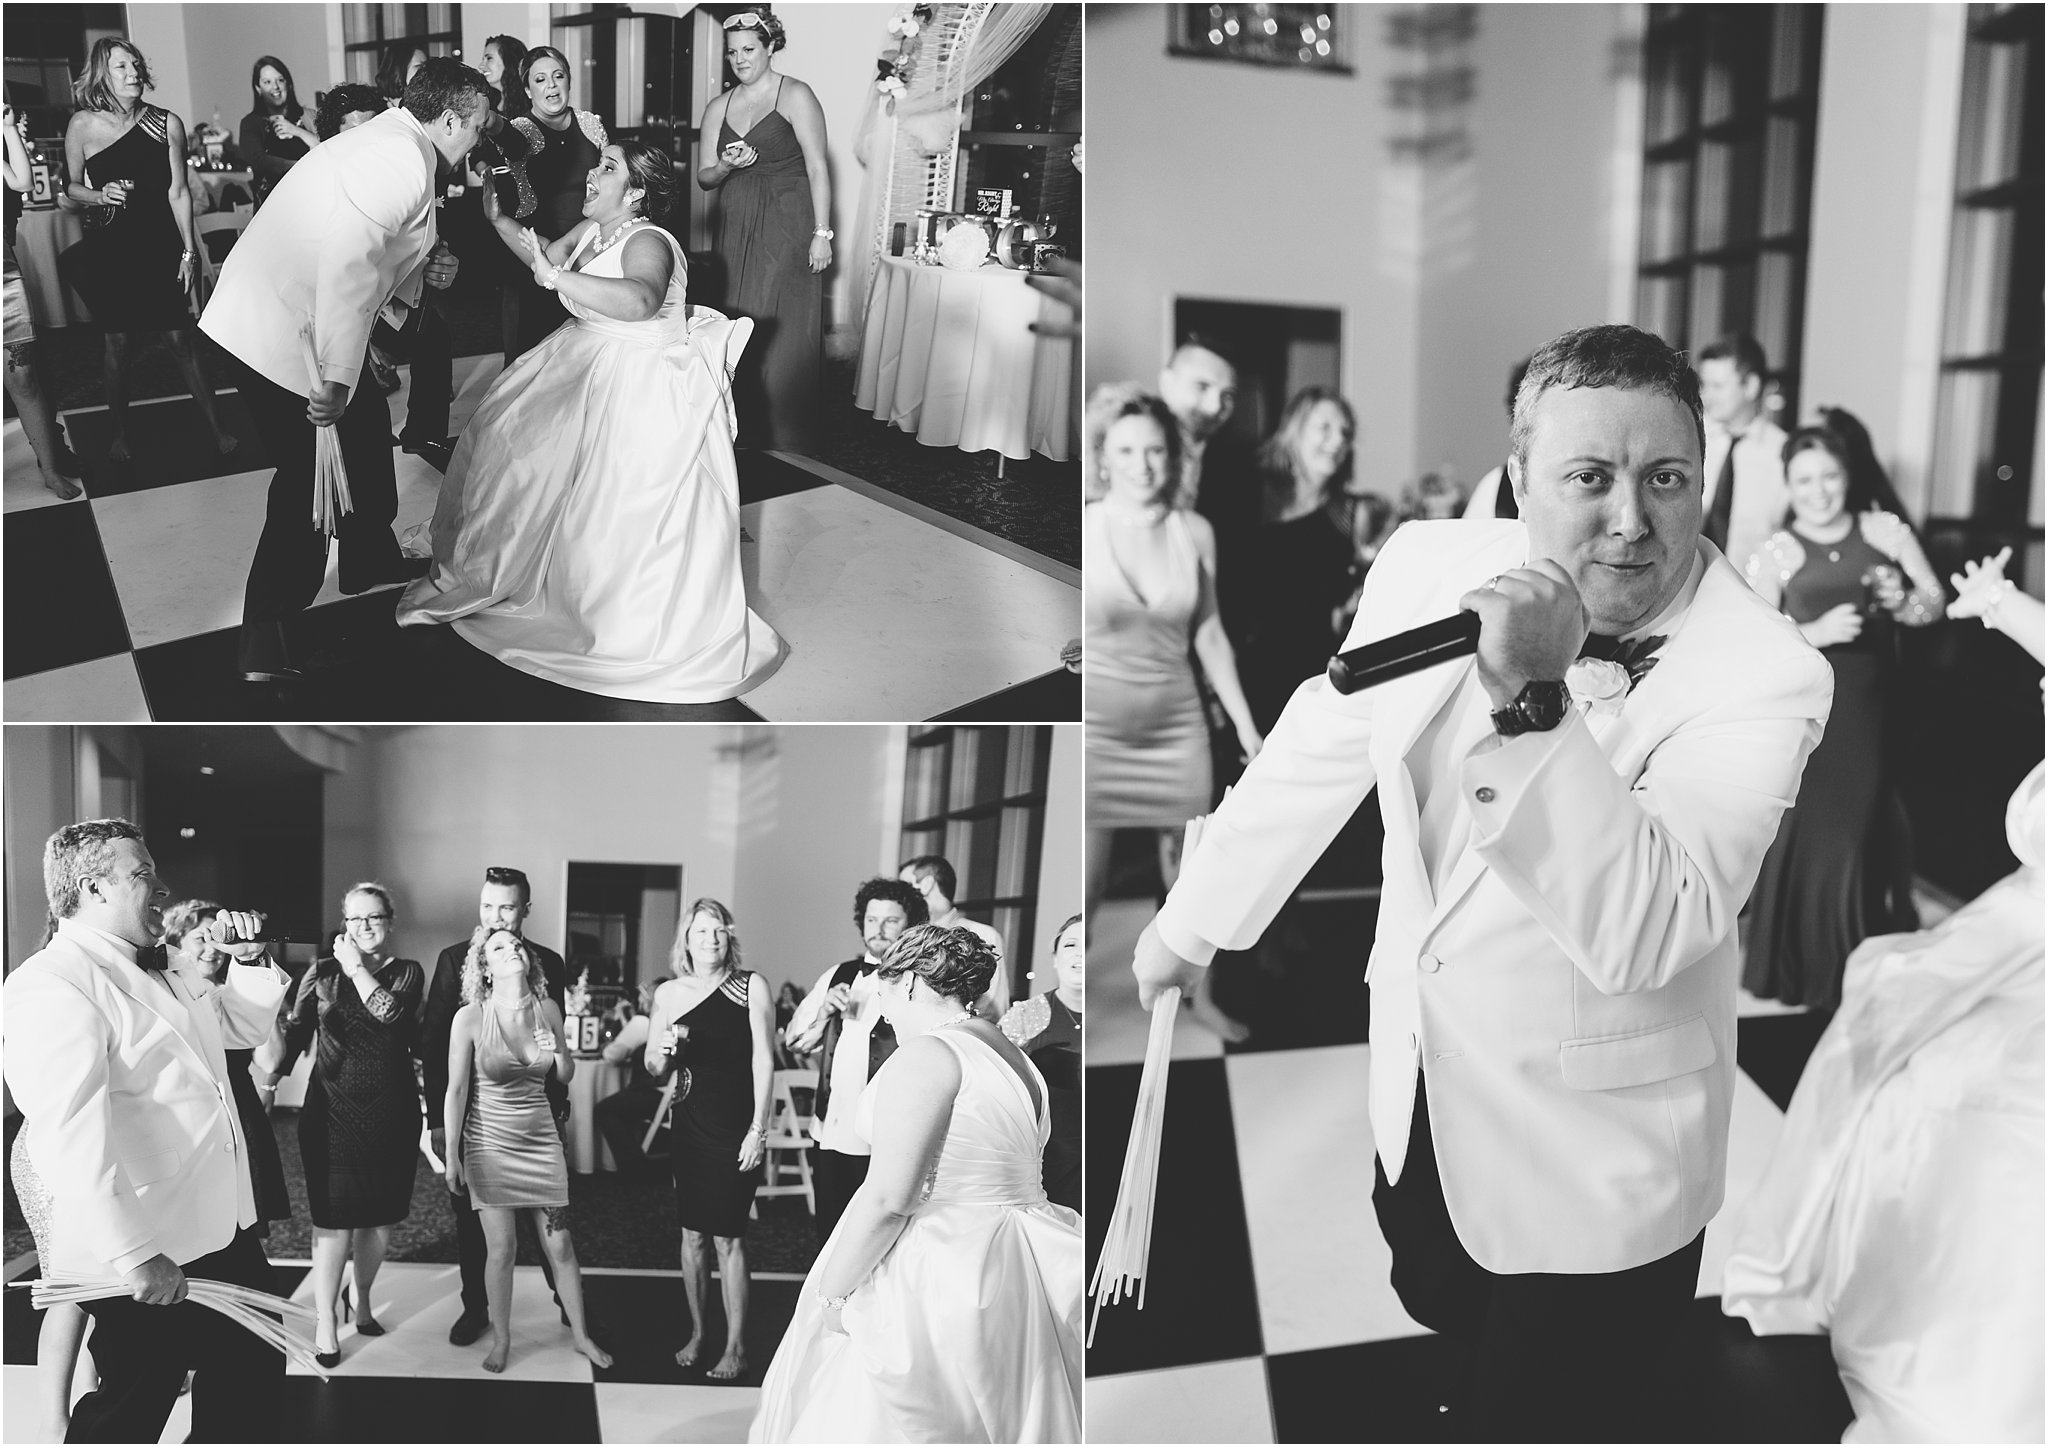 va_jessica_ryan_photography_virginia_wedding_norfolk_harrison_opera_house_norfolk_arts_district_portraits_3871